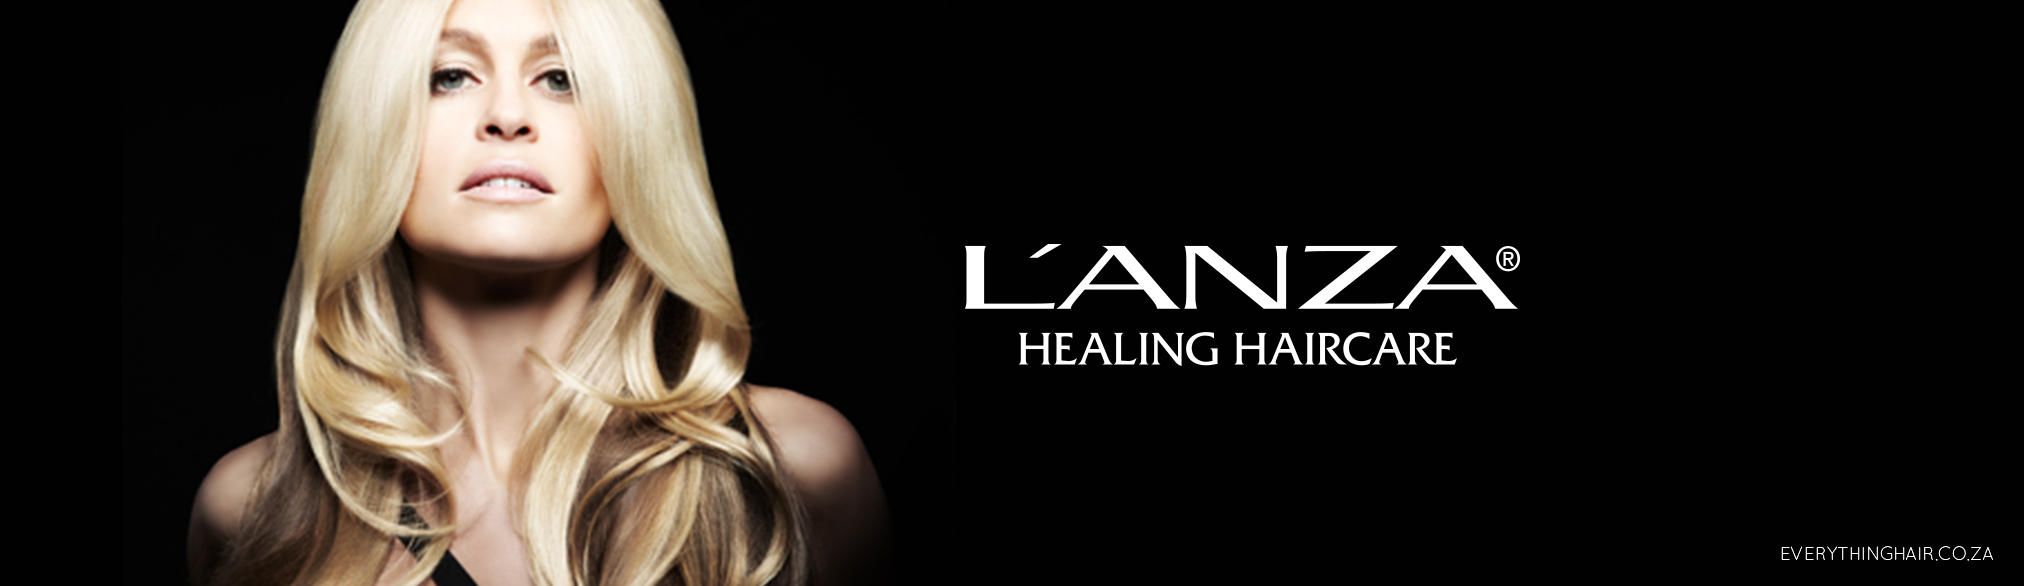 L'anza Gifts & Packs